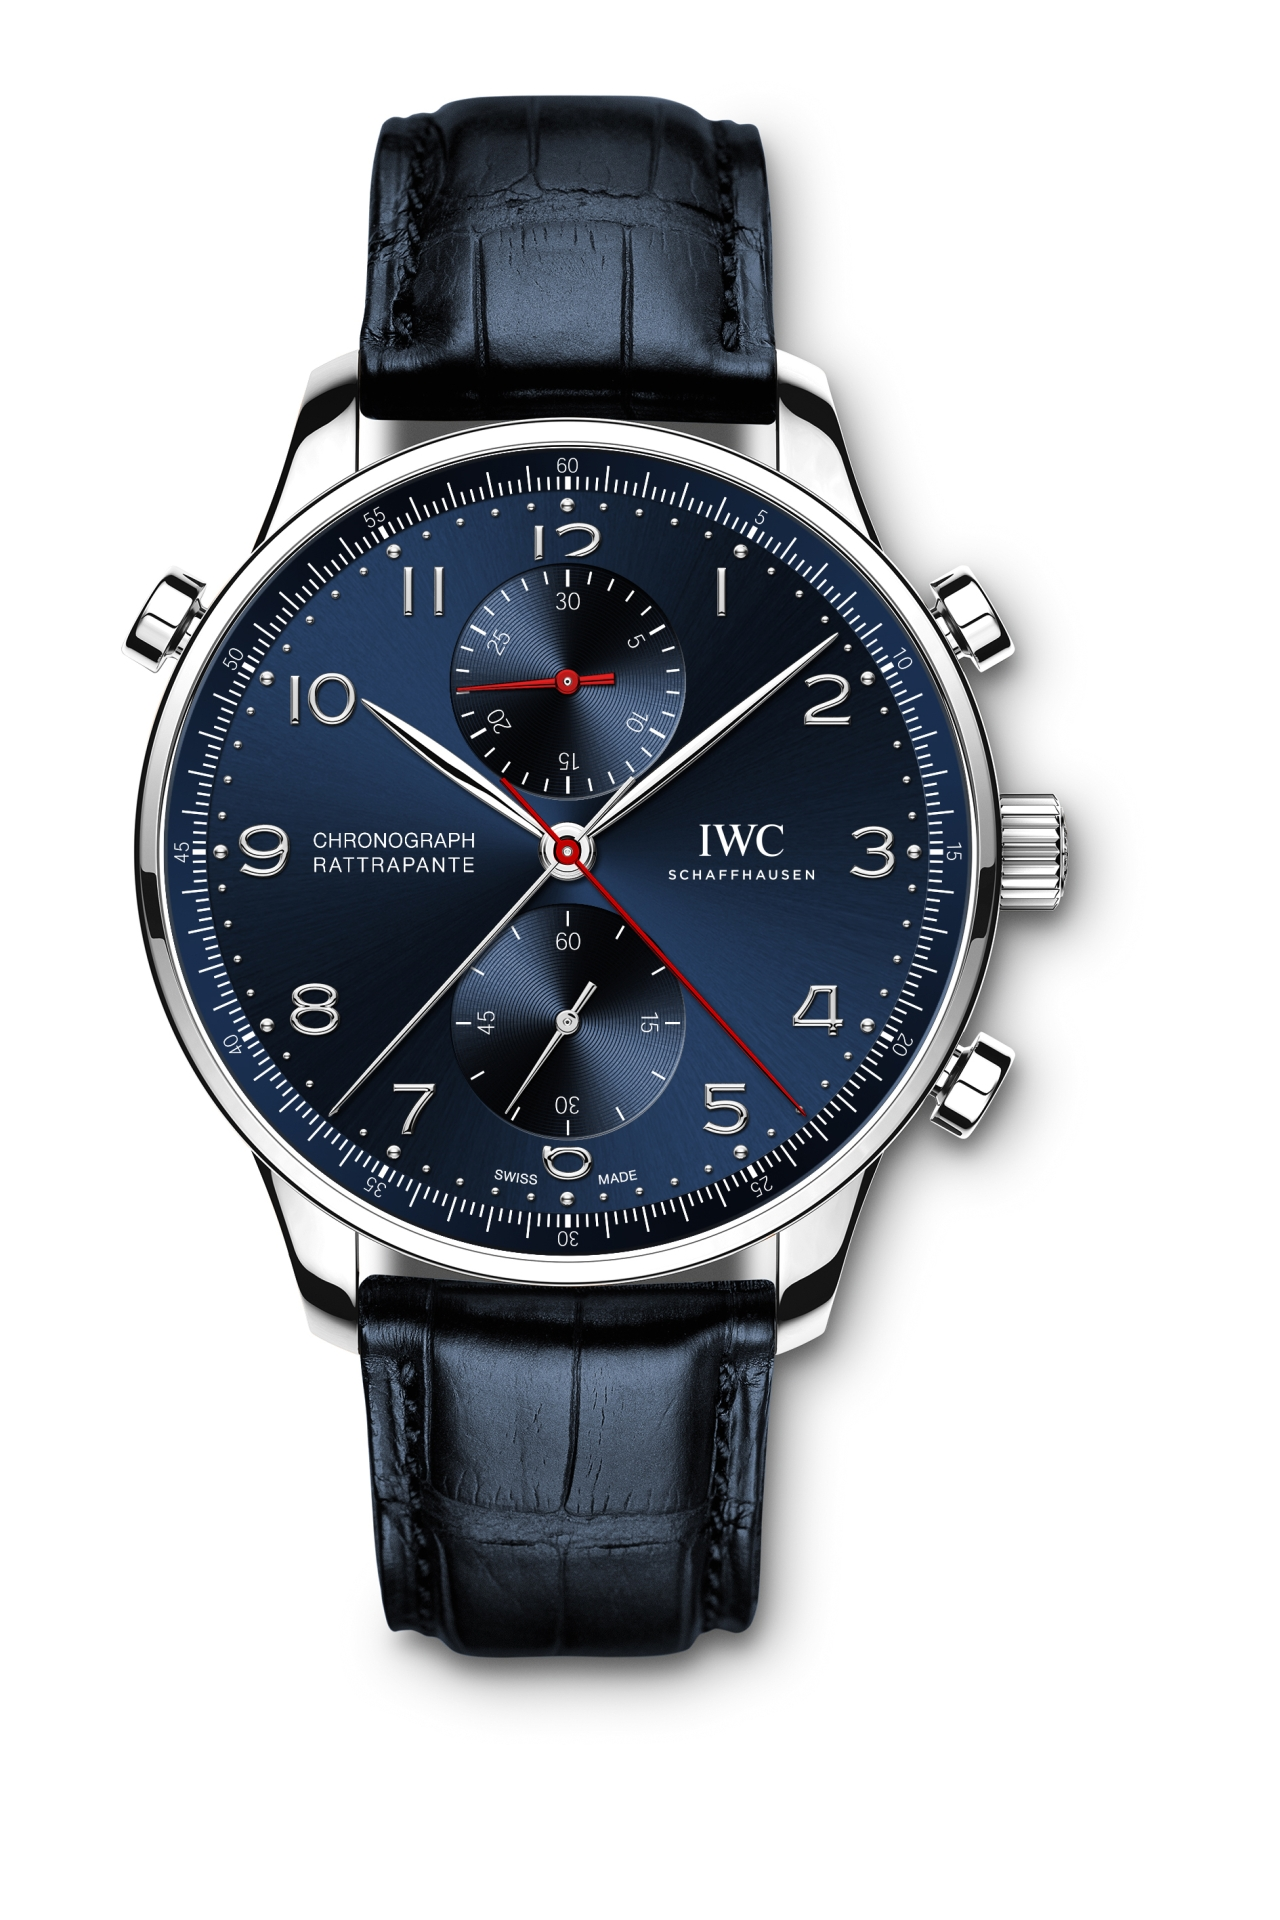 "The Portugieser Chronograph Rattrapante Edition ""Boutique Munich"" (Ref. IW371217) is a 250-piece limited edition. The timepiece is driven by a hand-wound 76240-calibre movement with a power reserve of 44 hours. (PPR/IWC)"